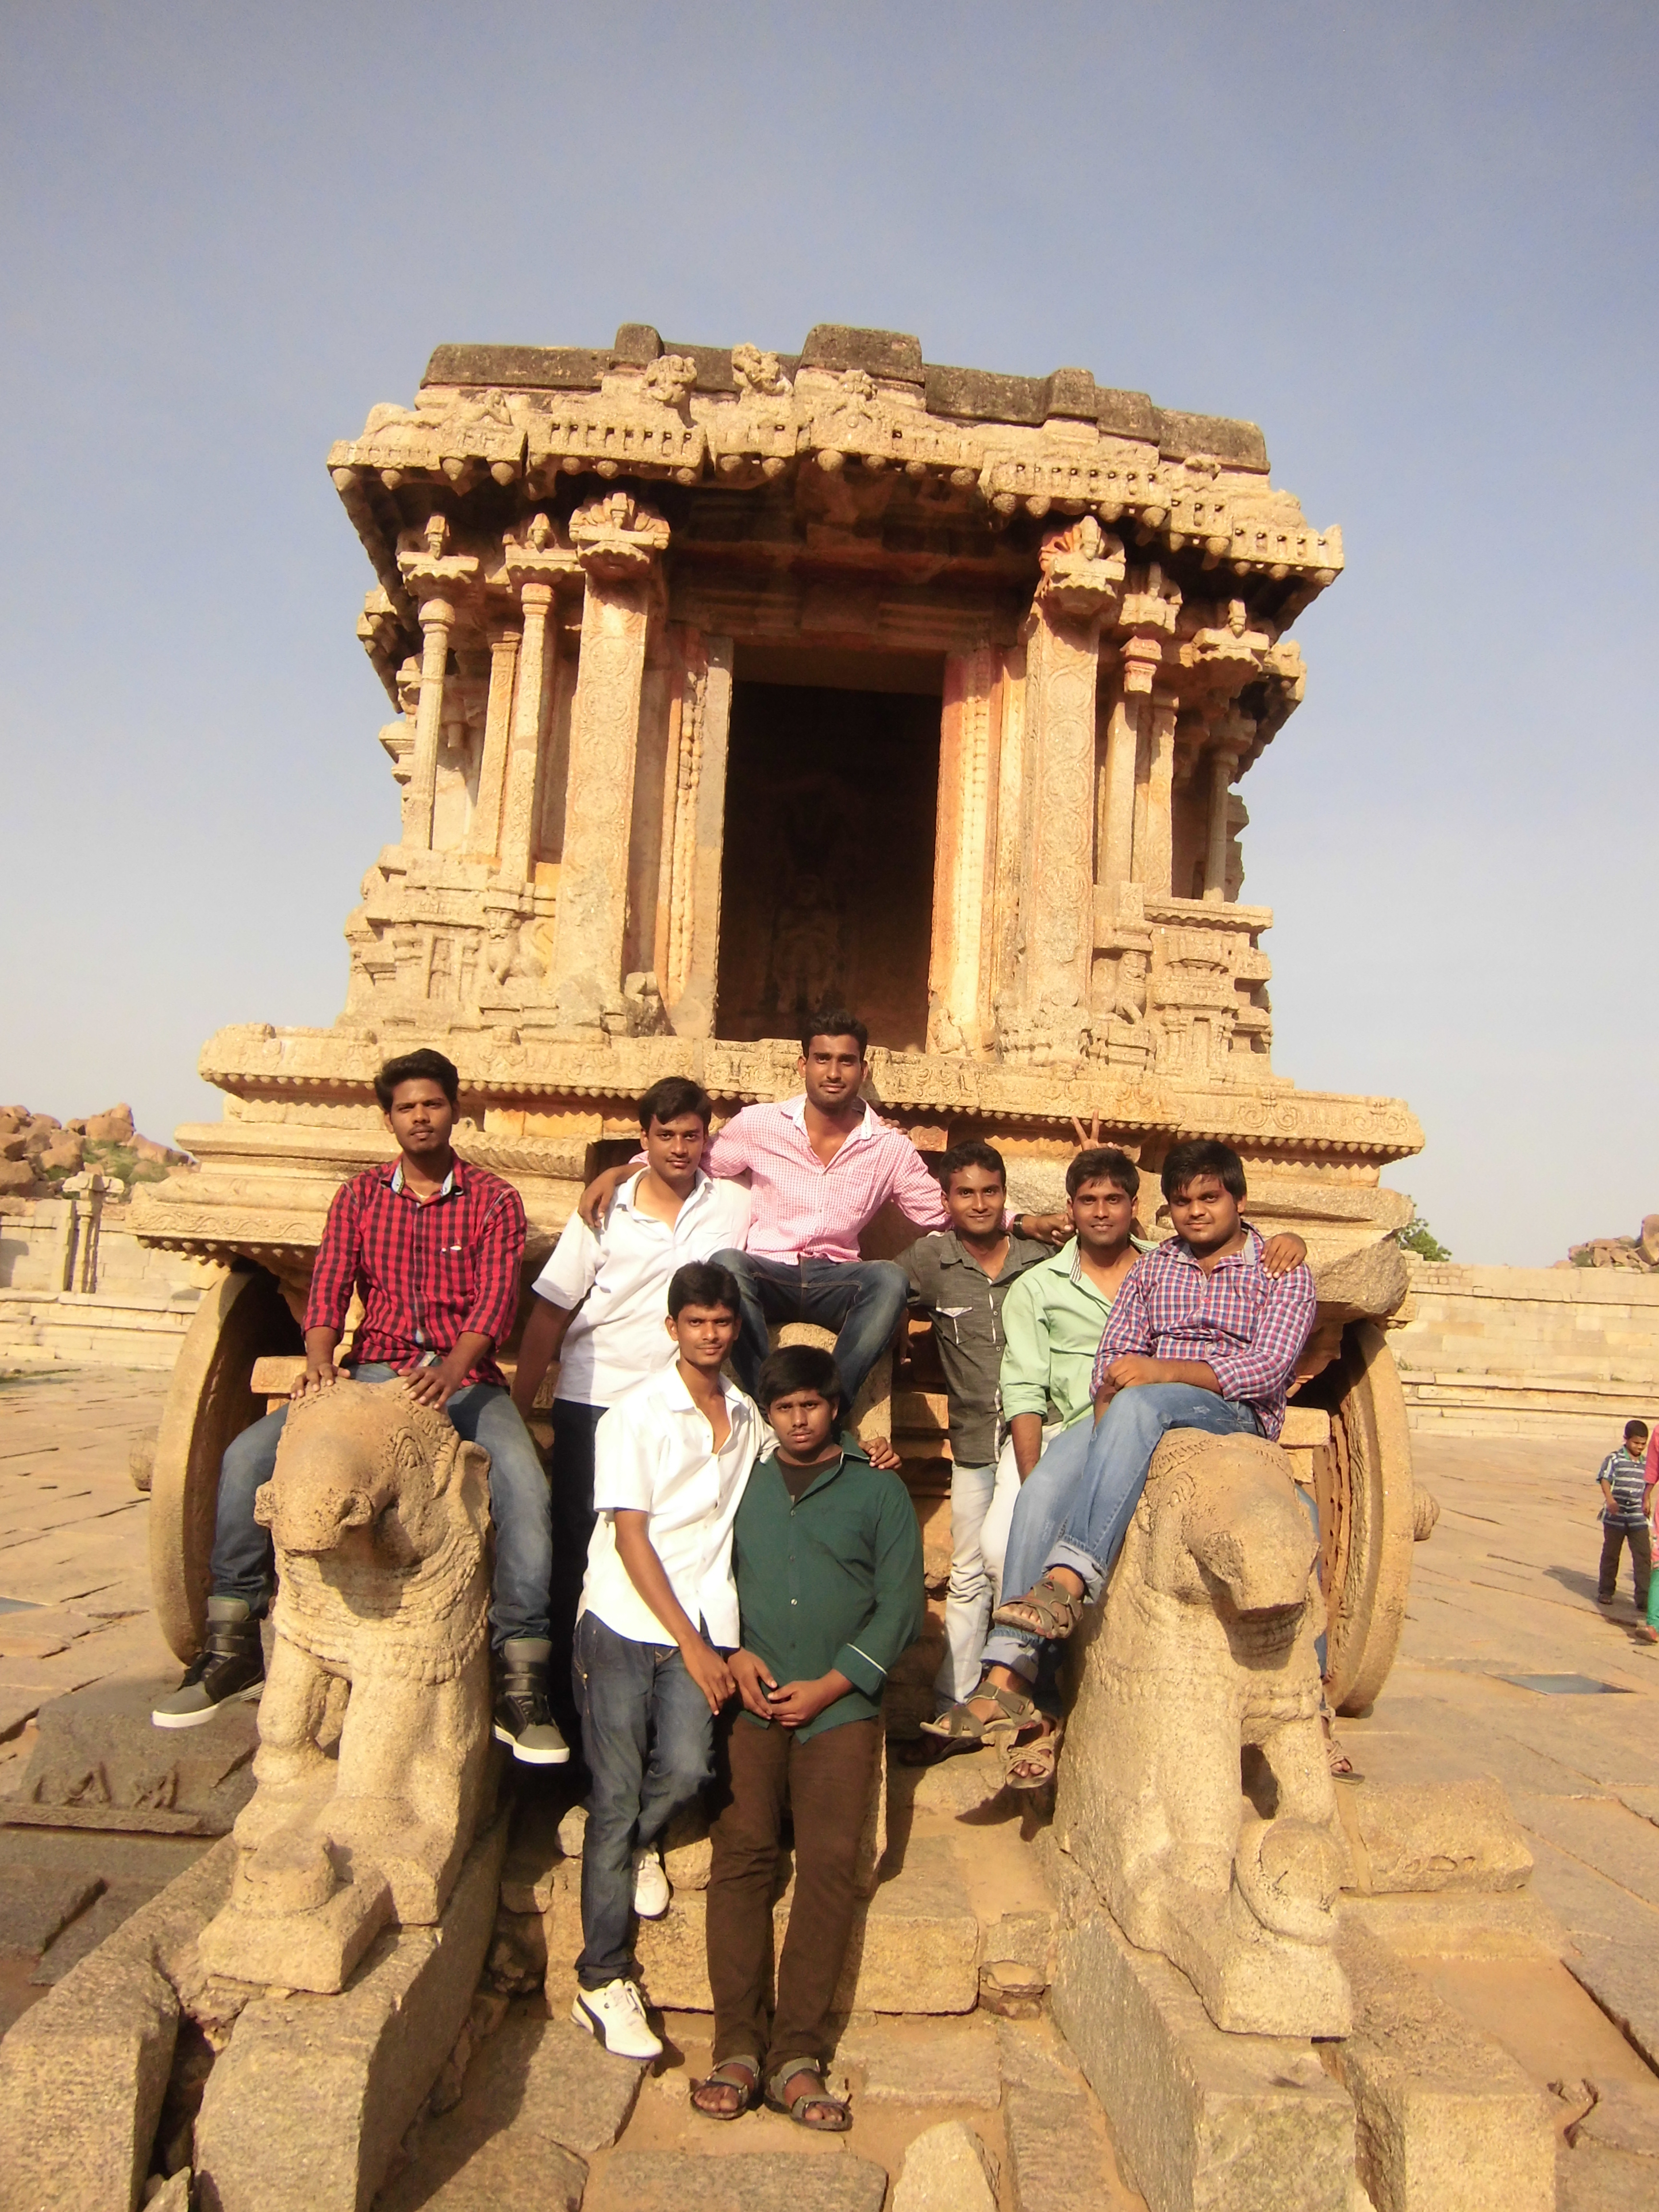 Hi everyone this is Umashankar(the red shirt guy in the photo). i'm from Tirupati, i went to hampi along with my friends in the month of June. we just graduated from the college so we want to celebrate it.at first many places came in to our minds. but i always love to visit Historical places so we searched on the web for a nearest site ,then Hampi came on to the picture. we started our journey from tirupati railway  station and it's a long way to reach hampi. we travelled 8hrs and stepped out from train at Hospet. we took a room near to station. and the next morning we began our adventure. first we saw Virupaksha temple and from there we roamed every corner of hampi in our two day trip. it's really a wonderful place to visit. especially the stone carving mantapas at vittala temple are just awesome. finally we returned after bagging undying memories of Hampi